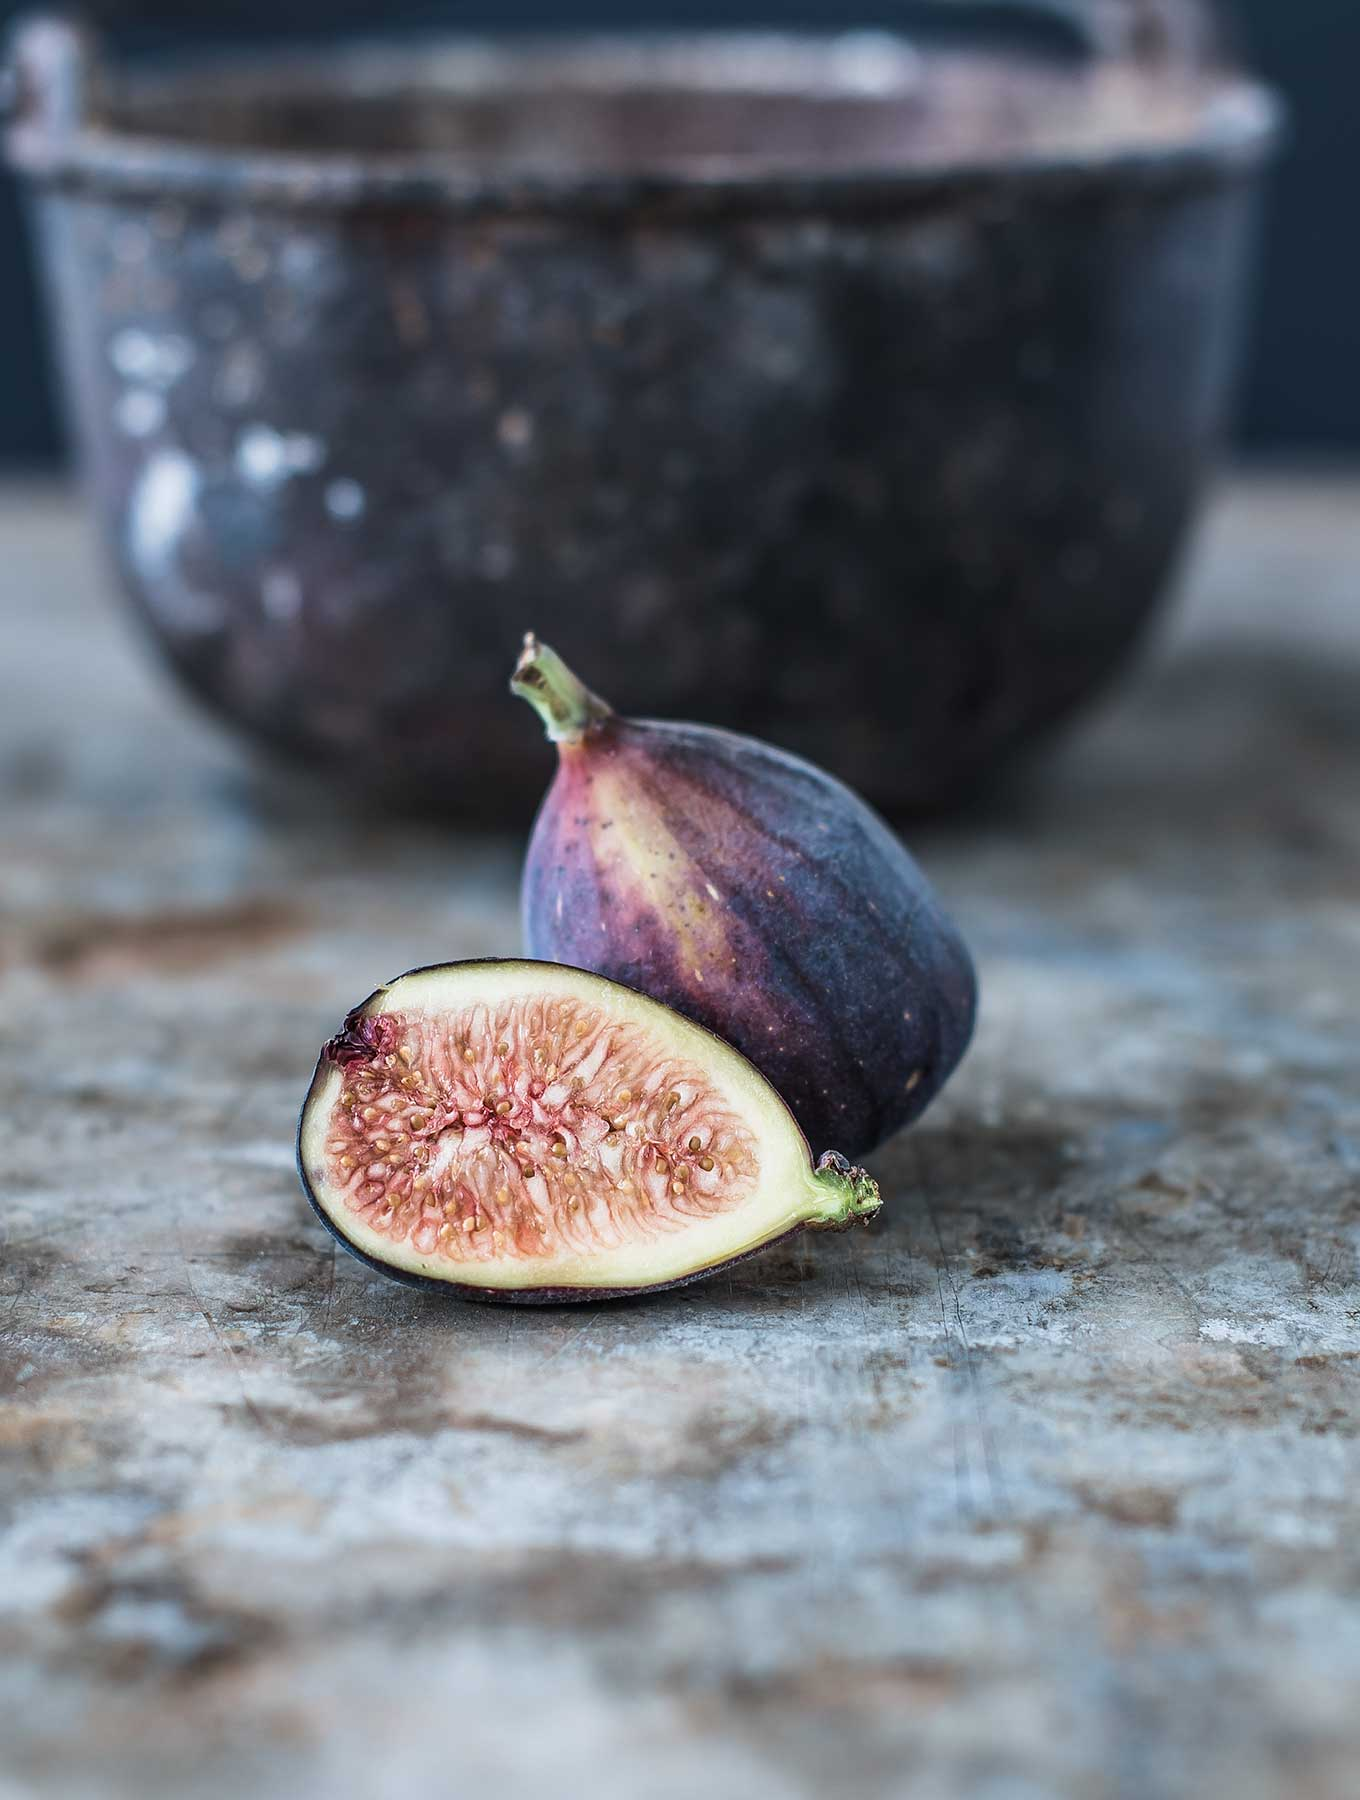 Fresh mission fig cut in half